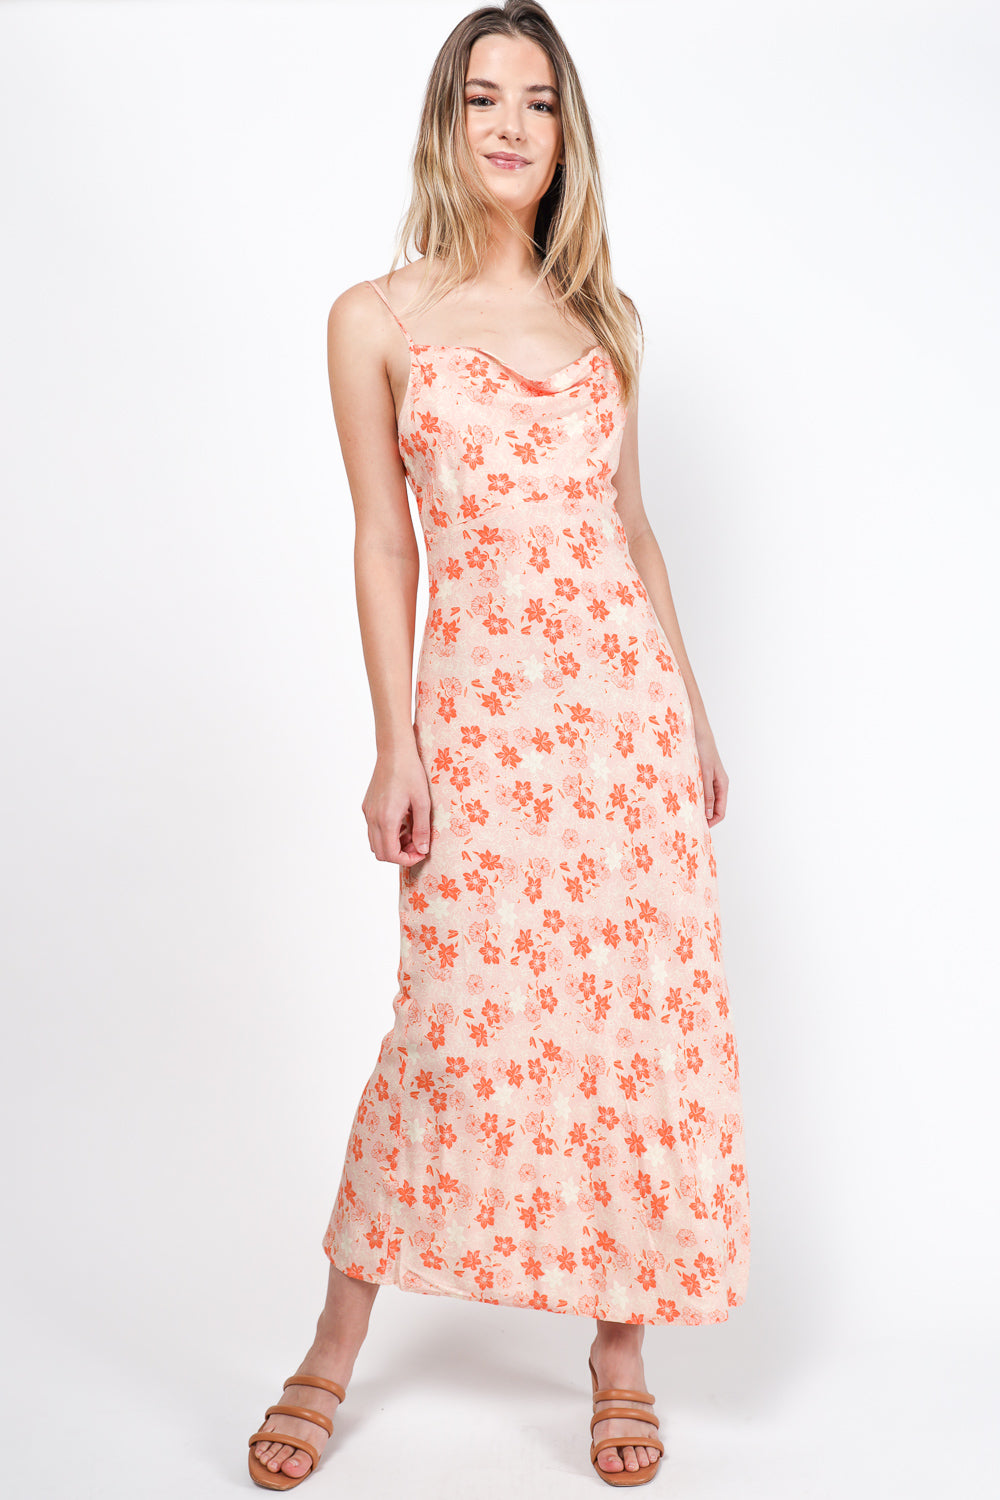 Sweetest Peaches Dress